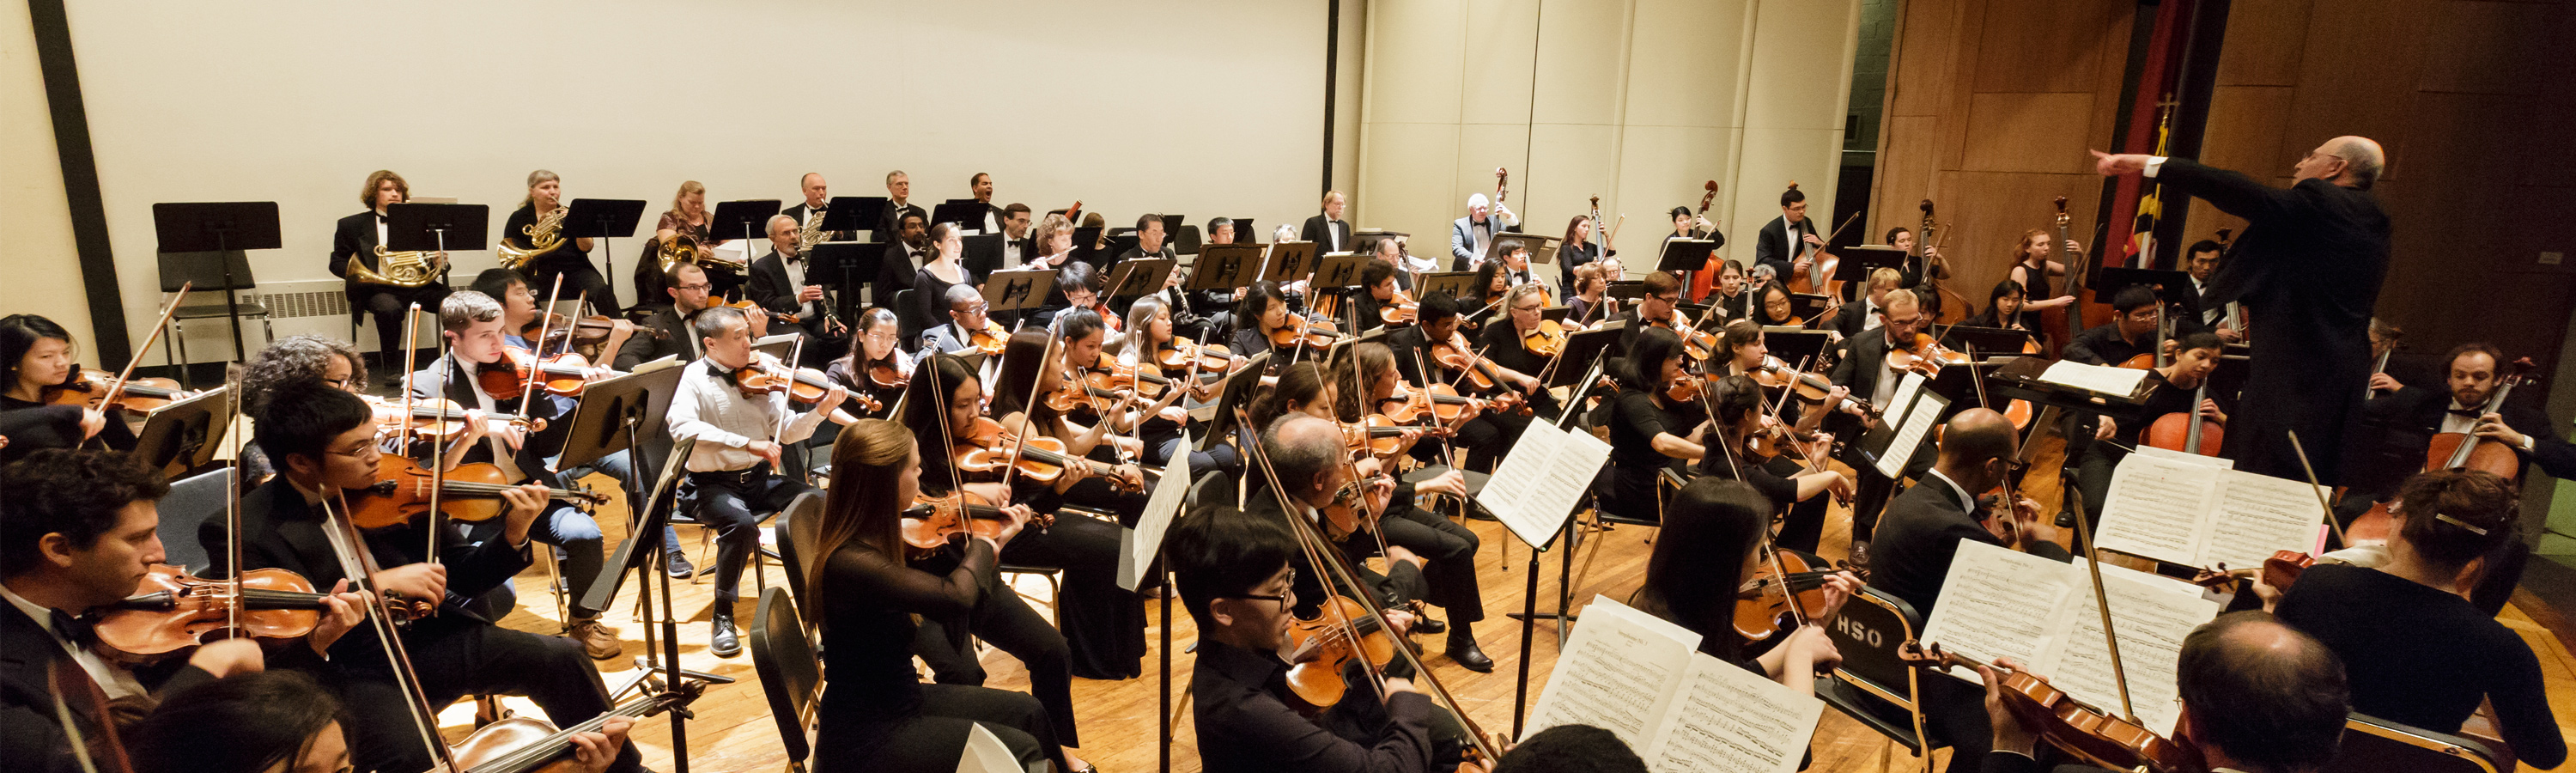 Hopkins Symphony Orchestra Evenings Part I - Elgar's Enigma Variations: On Friendship and Being Connected header image